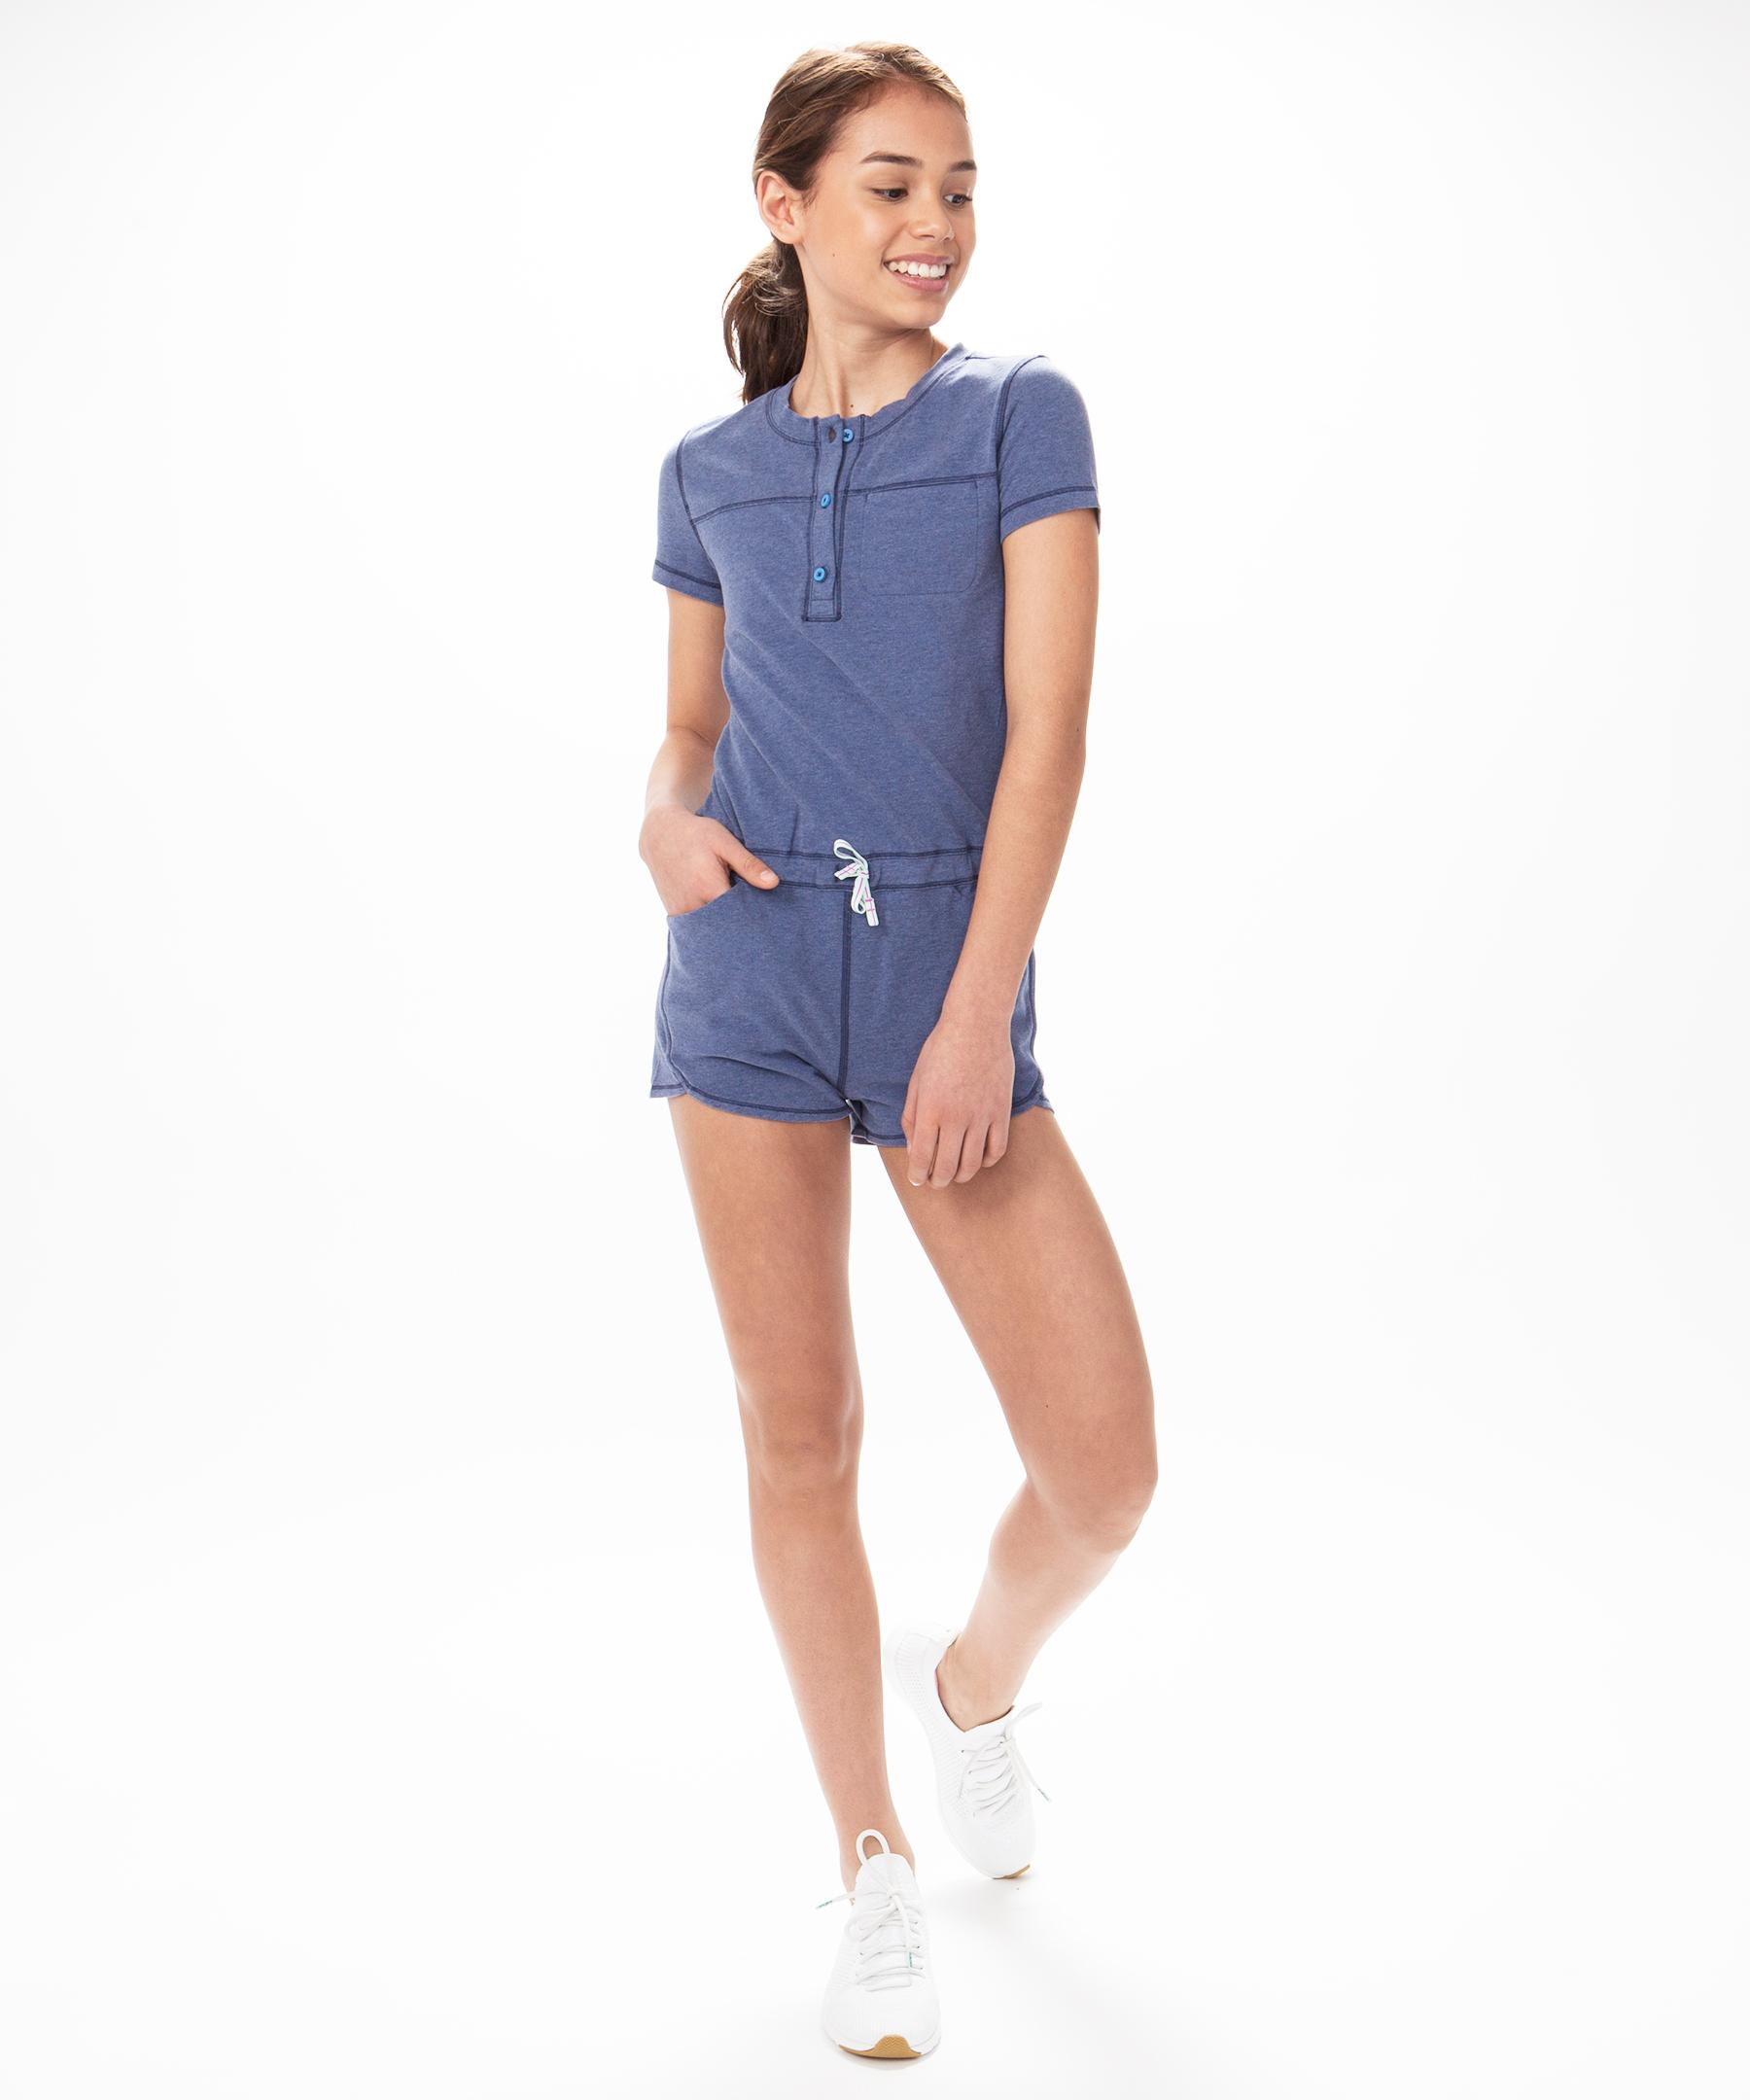 5deba302e17f Lyst - lululemon athletica Jump All In Romper - Girls in Blue